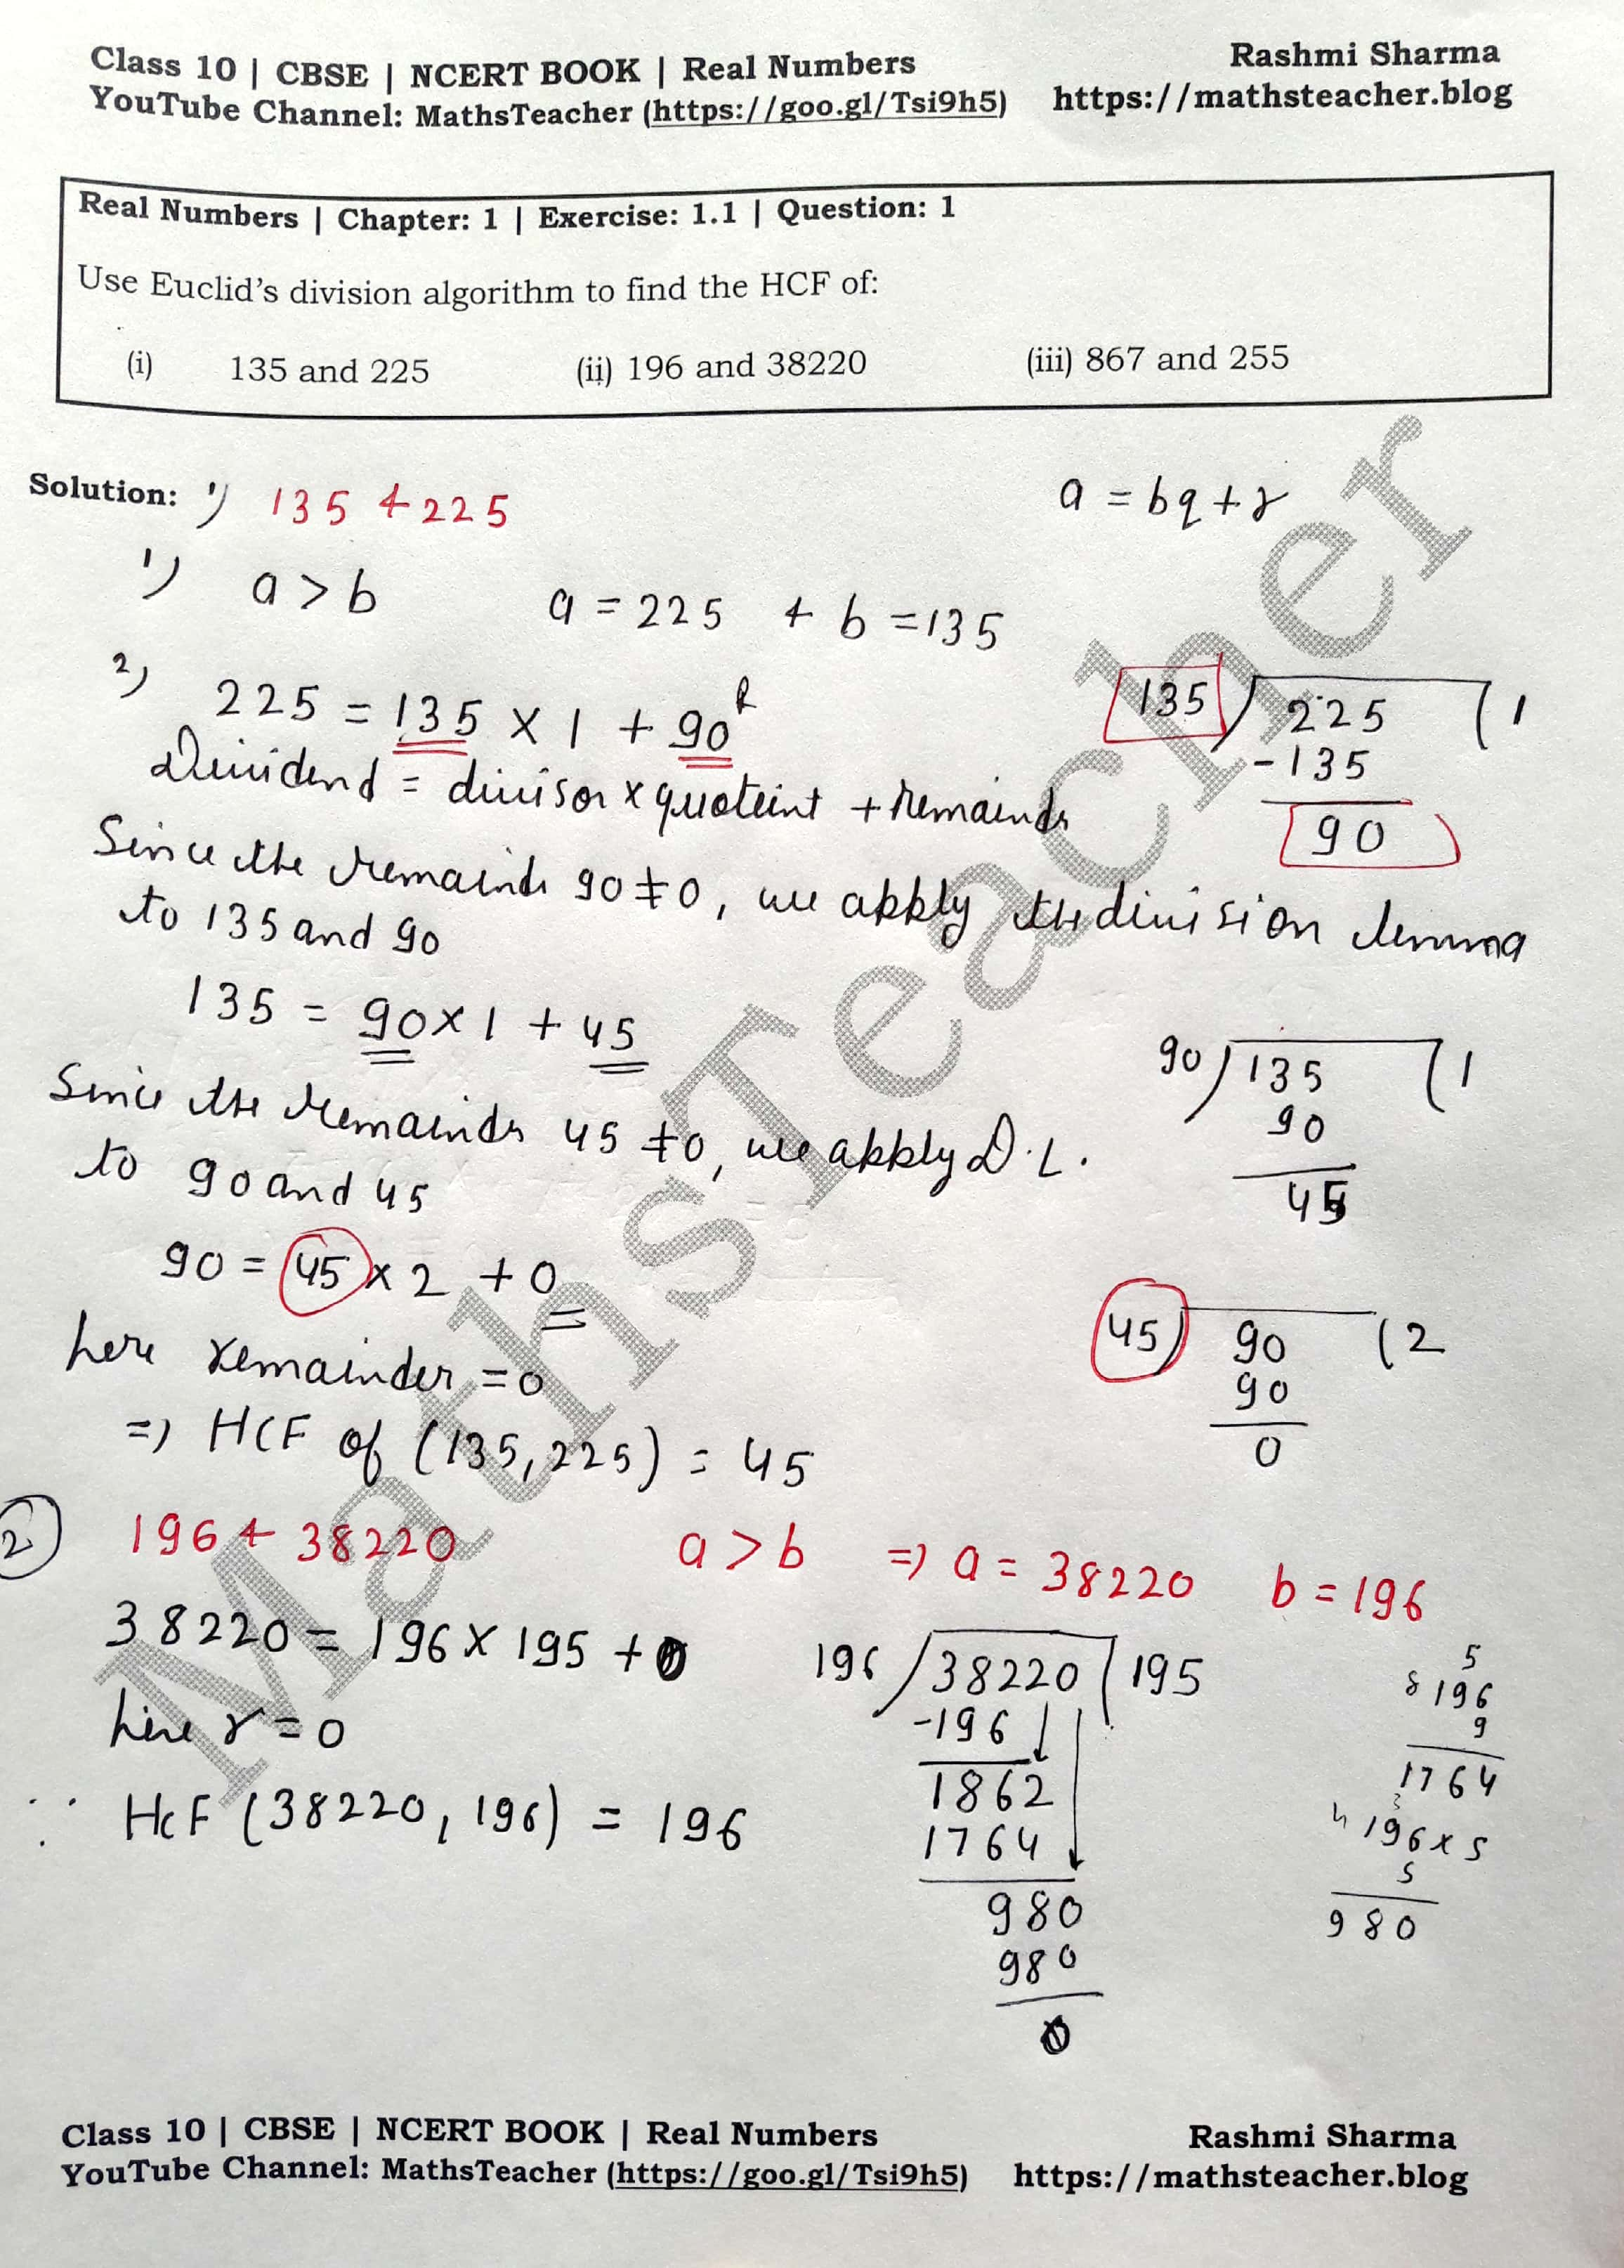 NCERT Solutions Class 10 Maths - Real Numbers | Chapter 1 Exercise ...